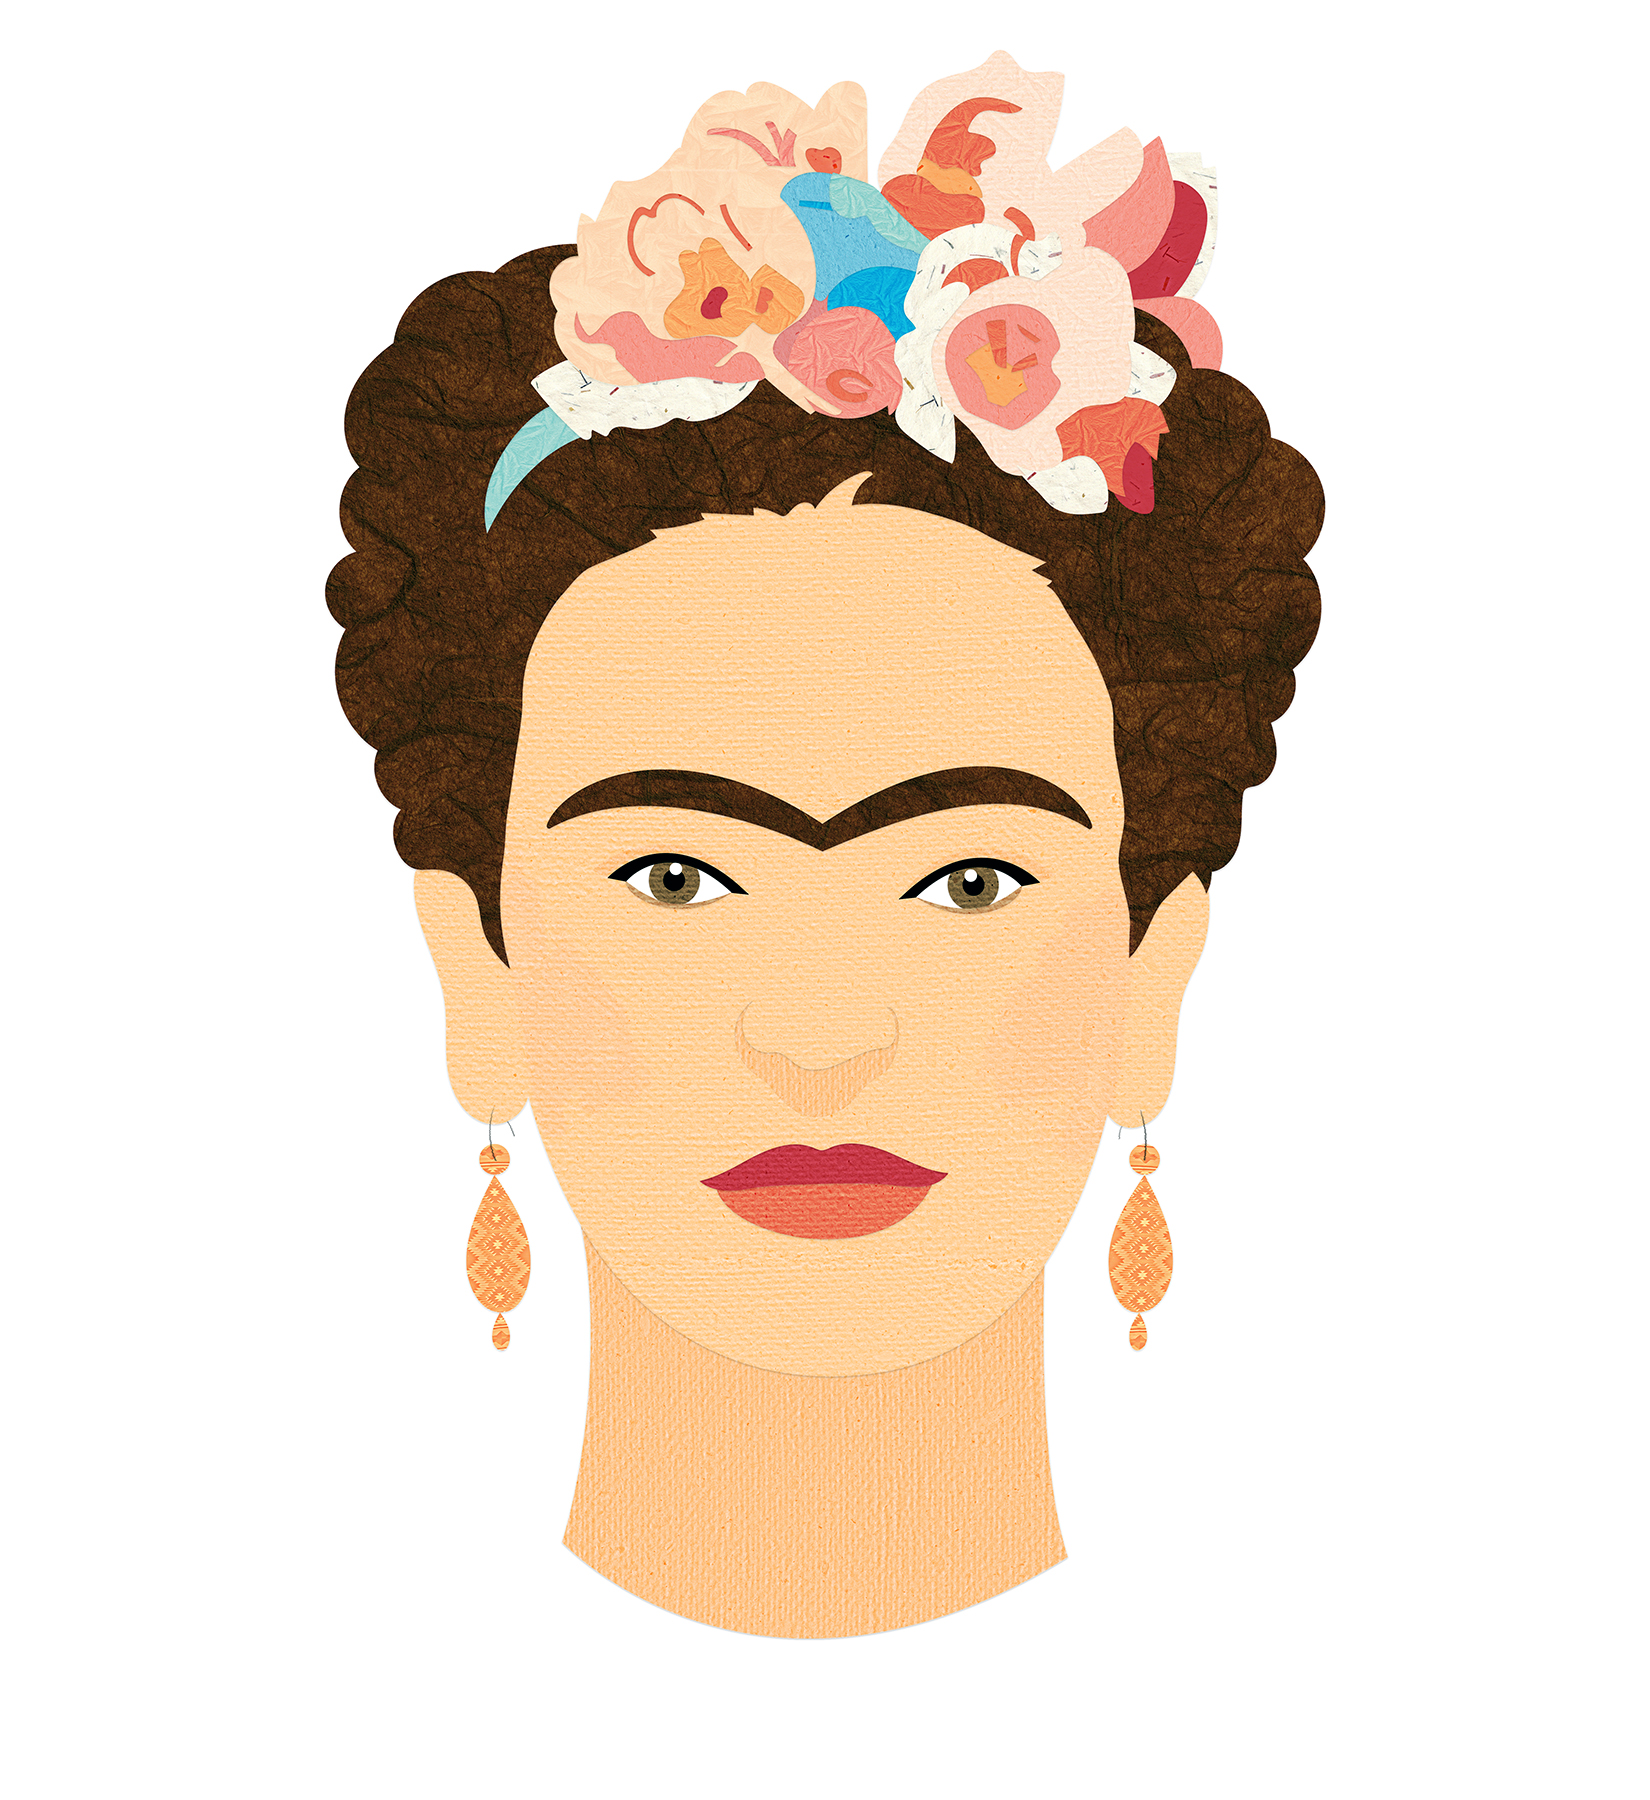 Frida Kahlo, Petite Collage Illustration Series